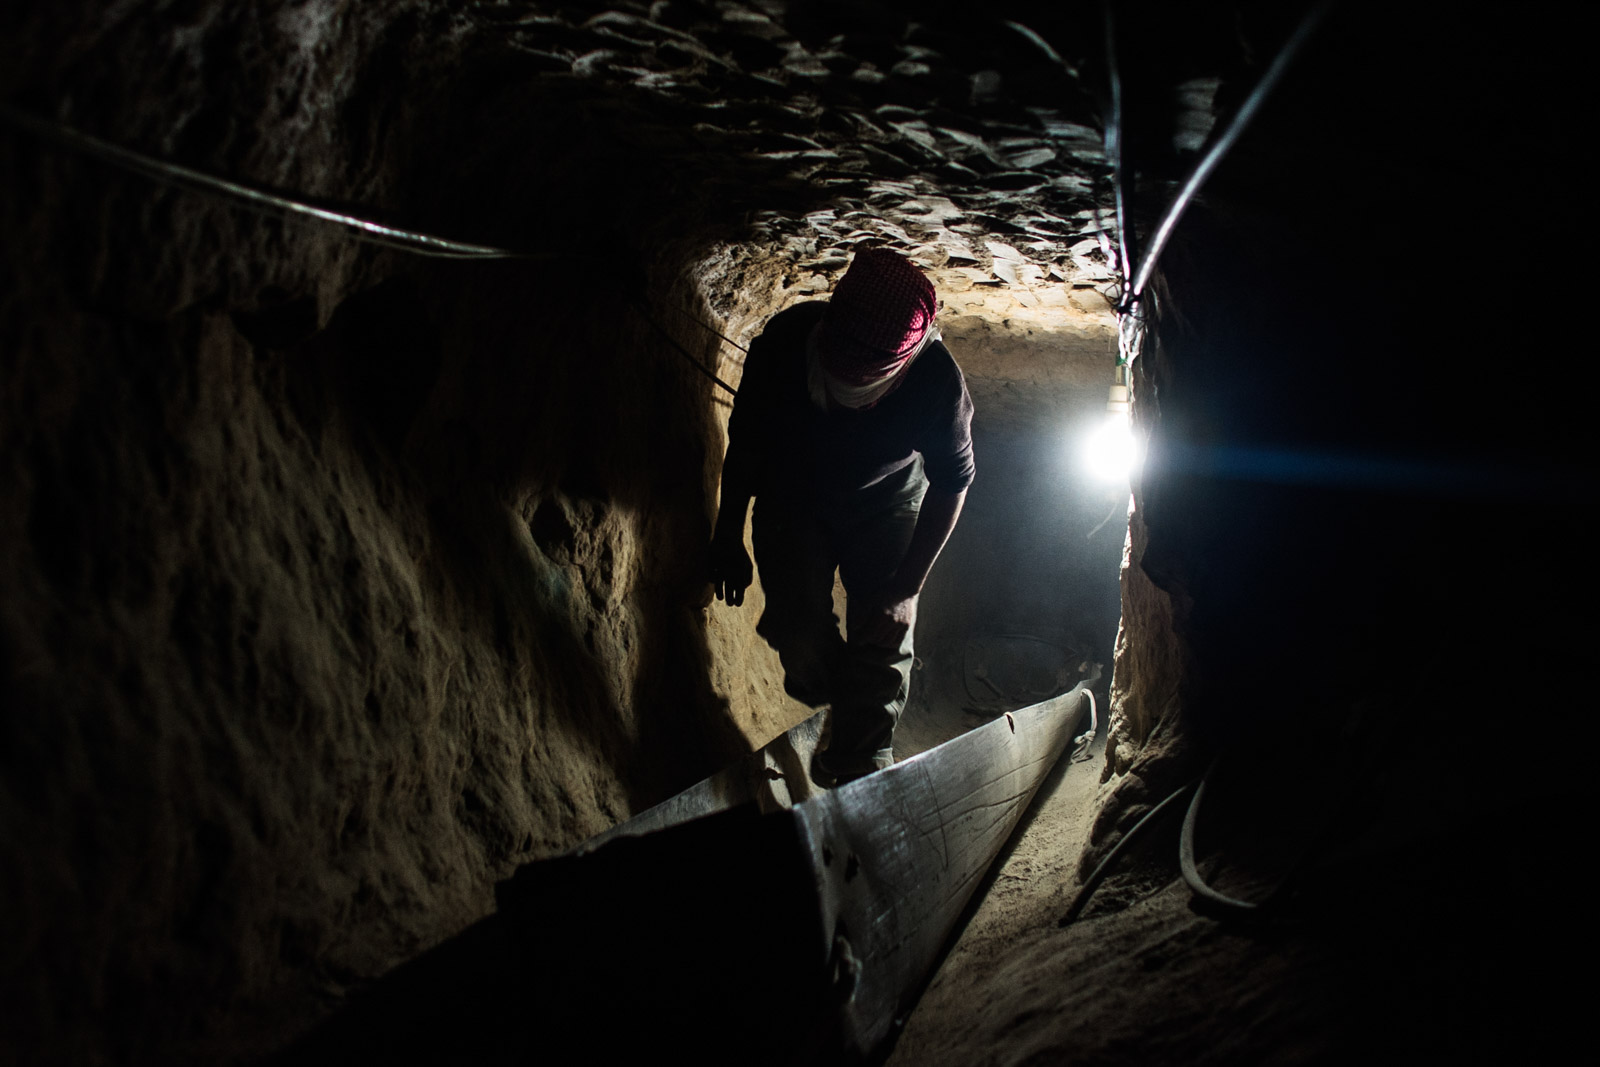 Rafah, Gaza - January 2, 2011: An unidentified smuggler walks through an underground tunnel below border of Egypt and Gaza. Tunnels serve as an illegal passage to Egypt for numerous Palestinians which try to flee Gaza.